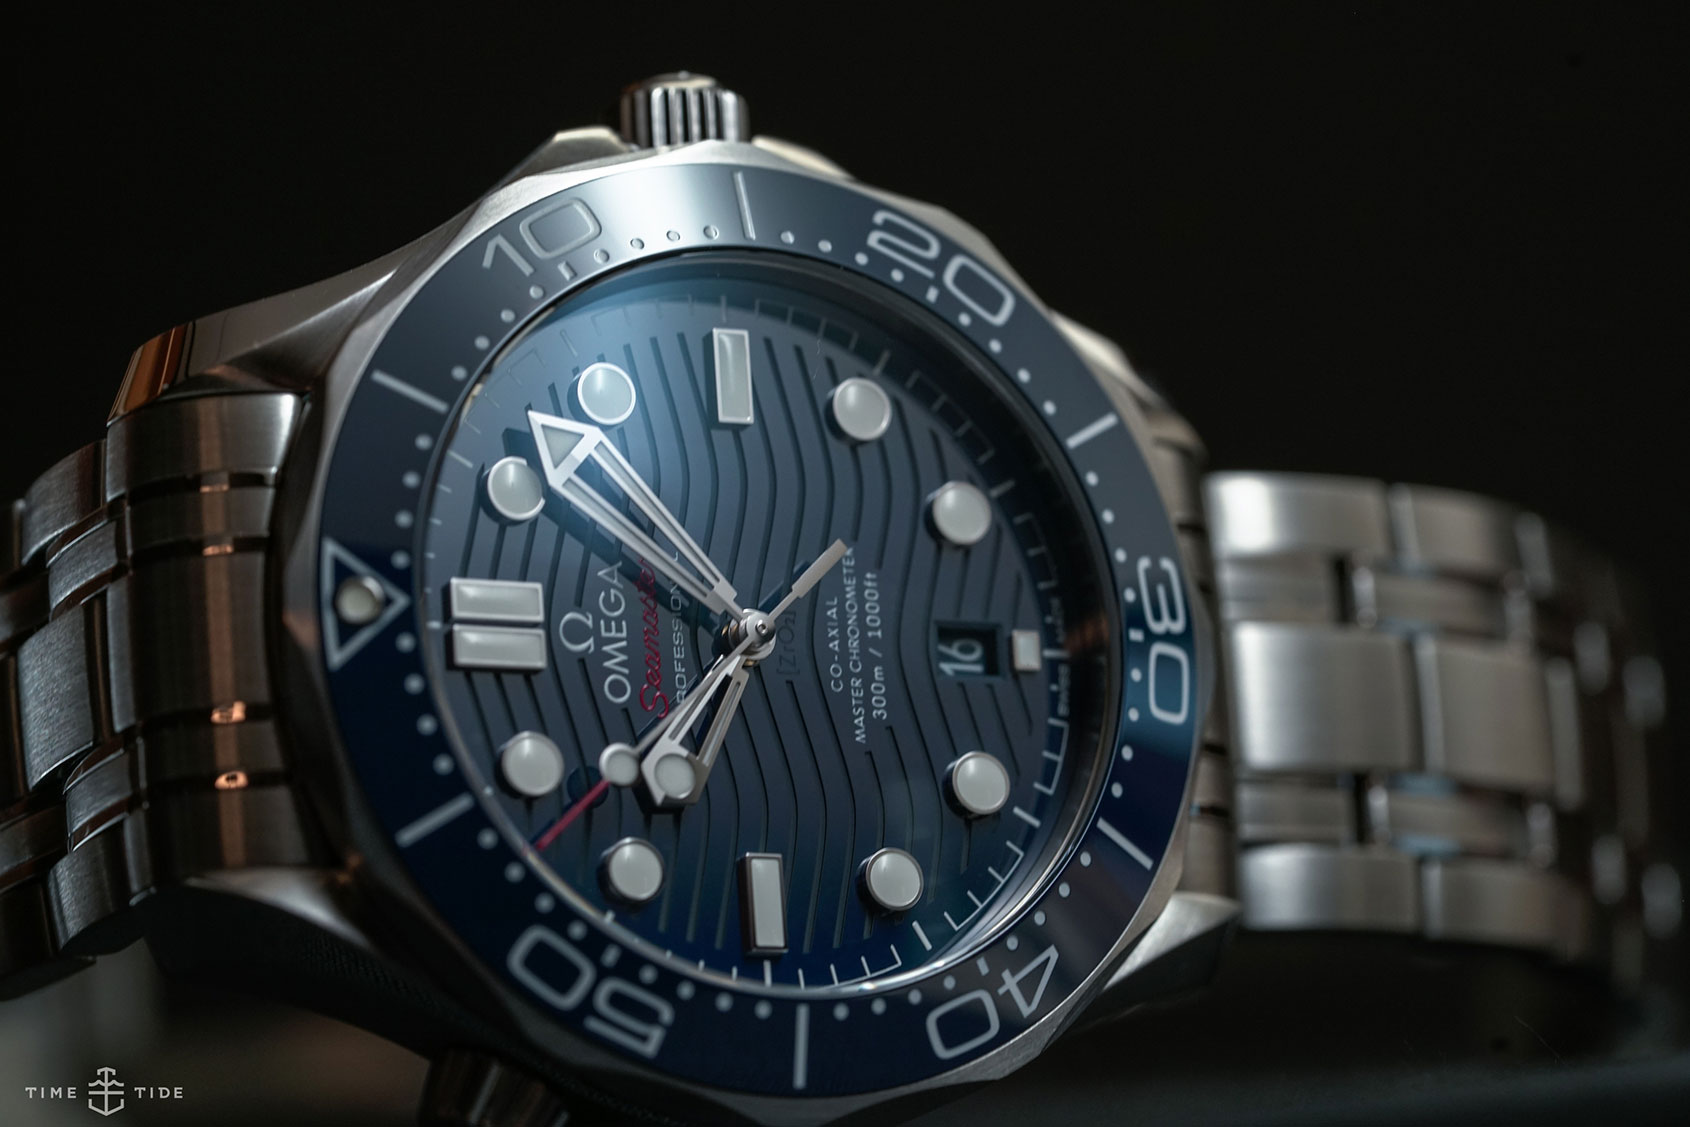 Hands on the omega seamaster professional 300m an all time classic gets fresh time and tide for Omega seamaster professional